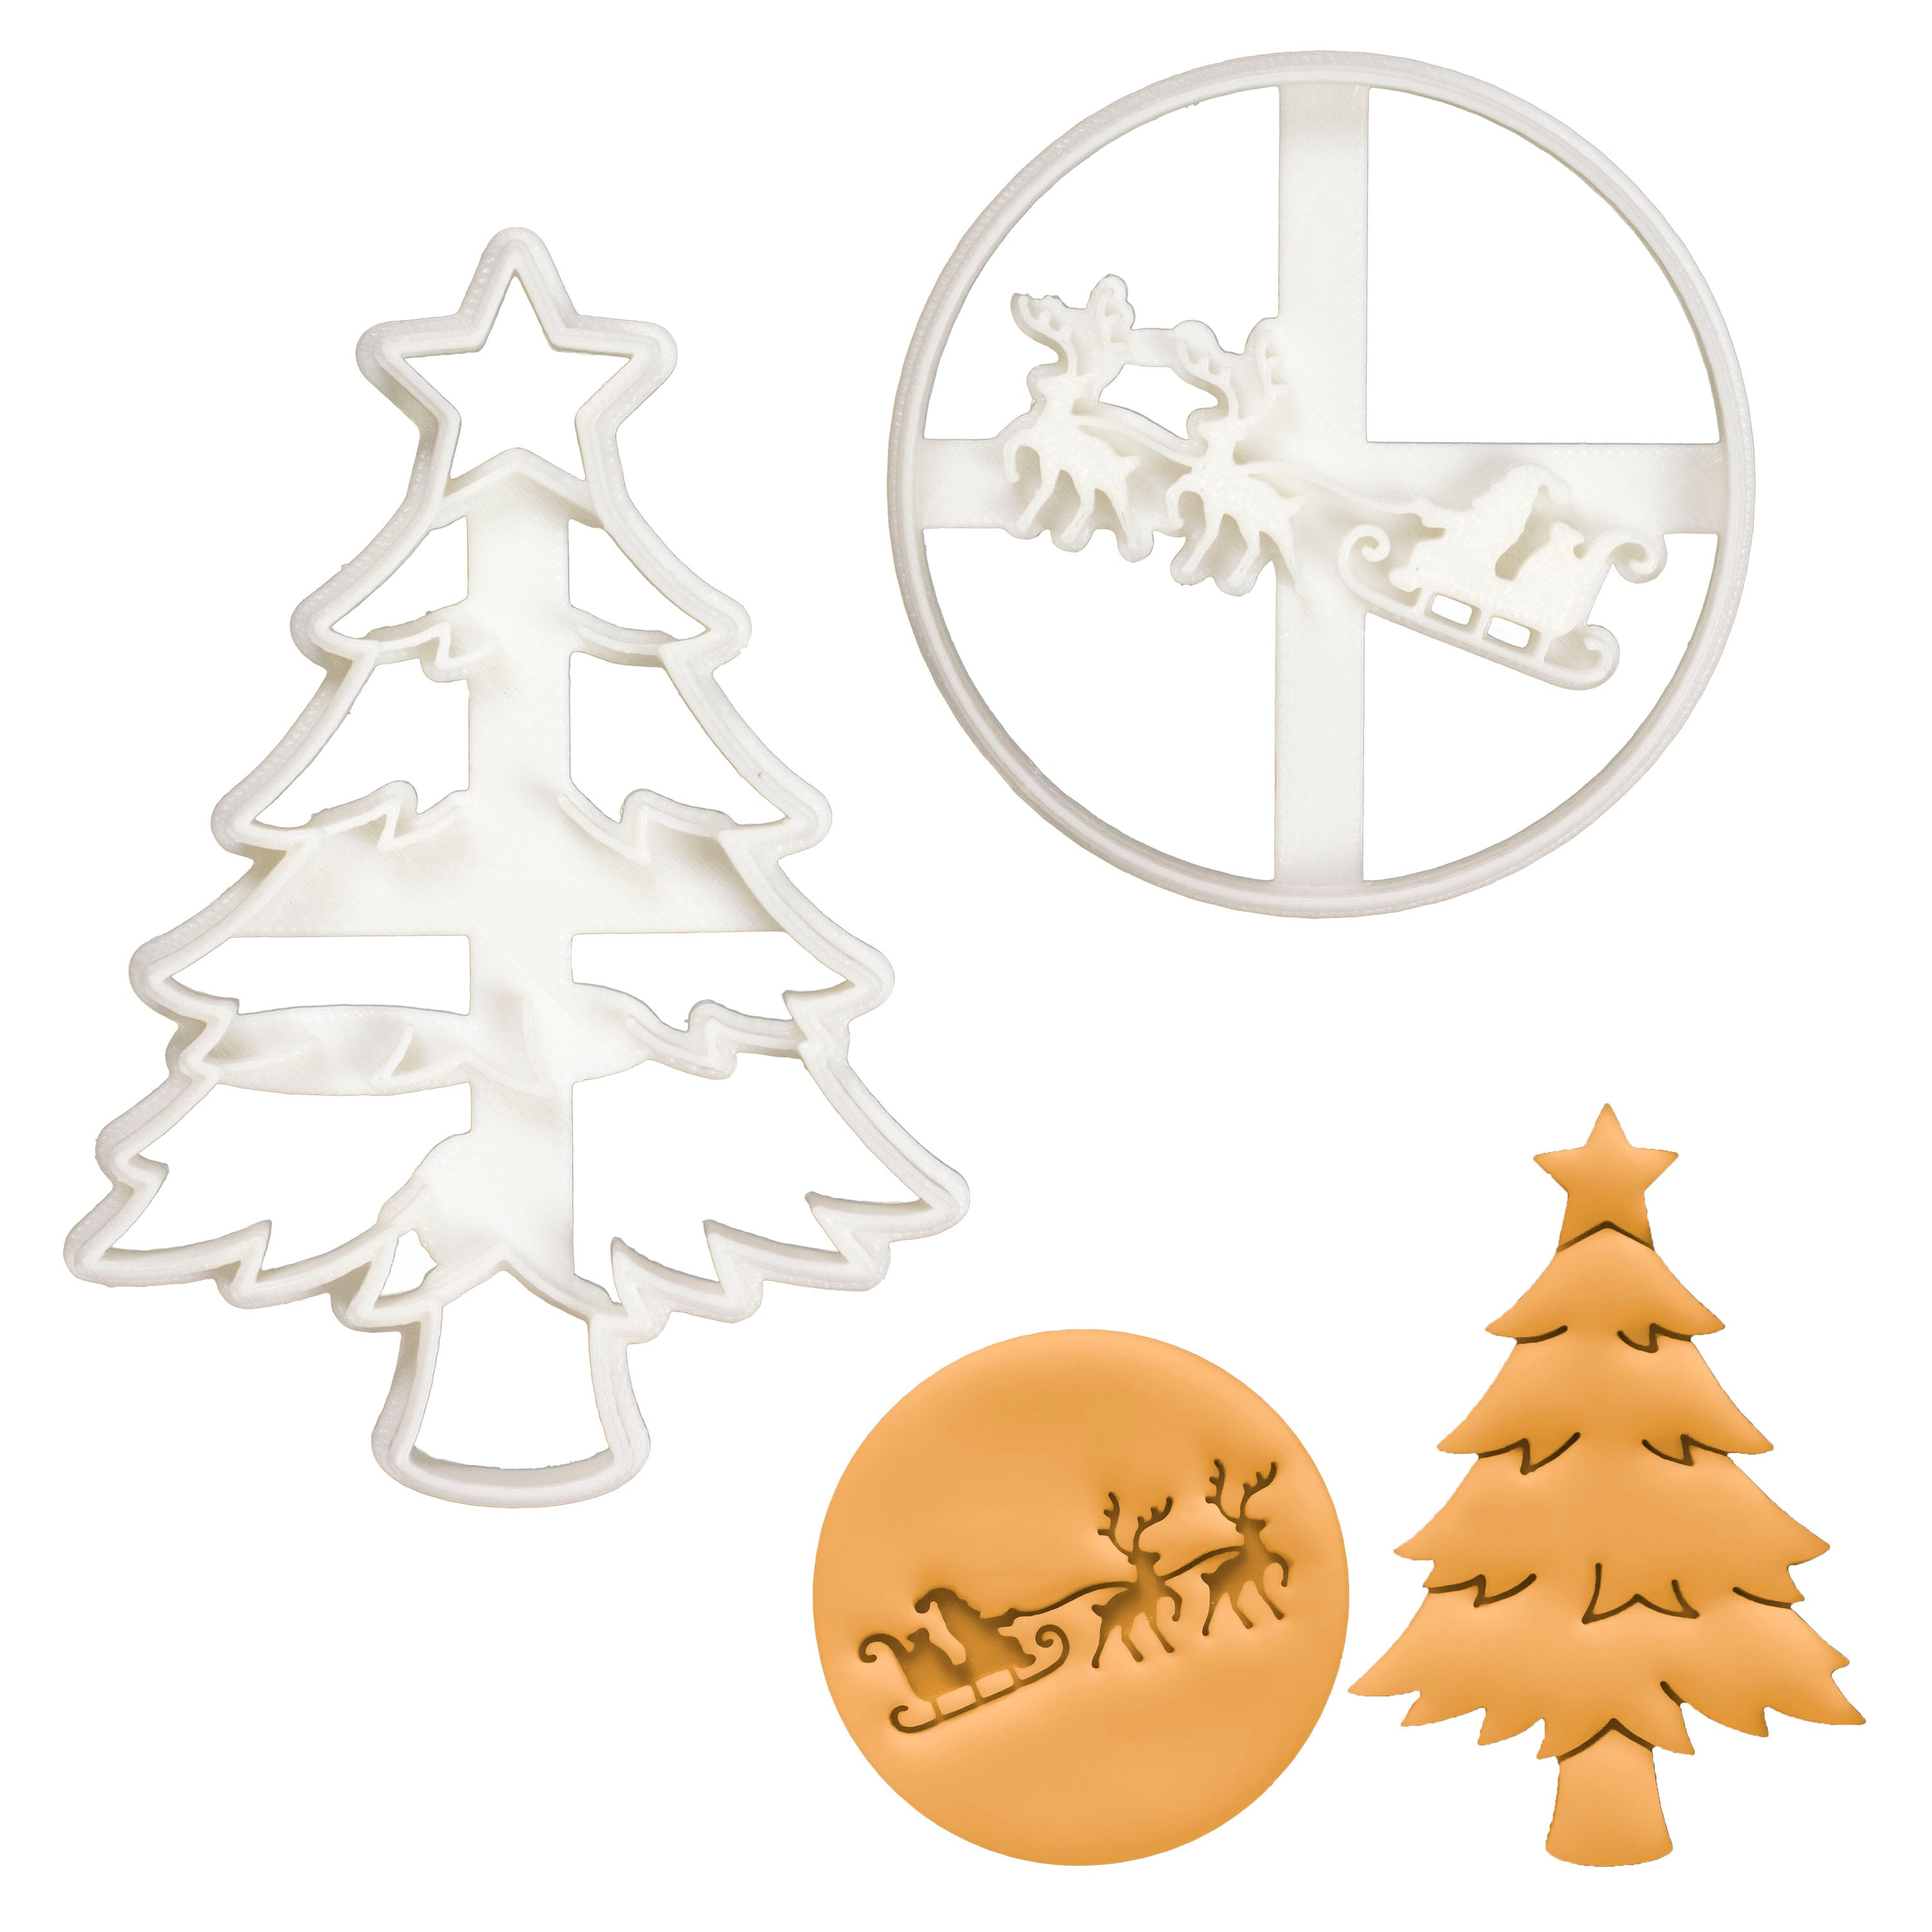 Set of 2 Christmas cookie cutters (Designs: Christmas Tree and Santa Claus with Reindeer)